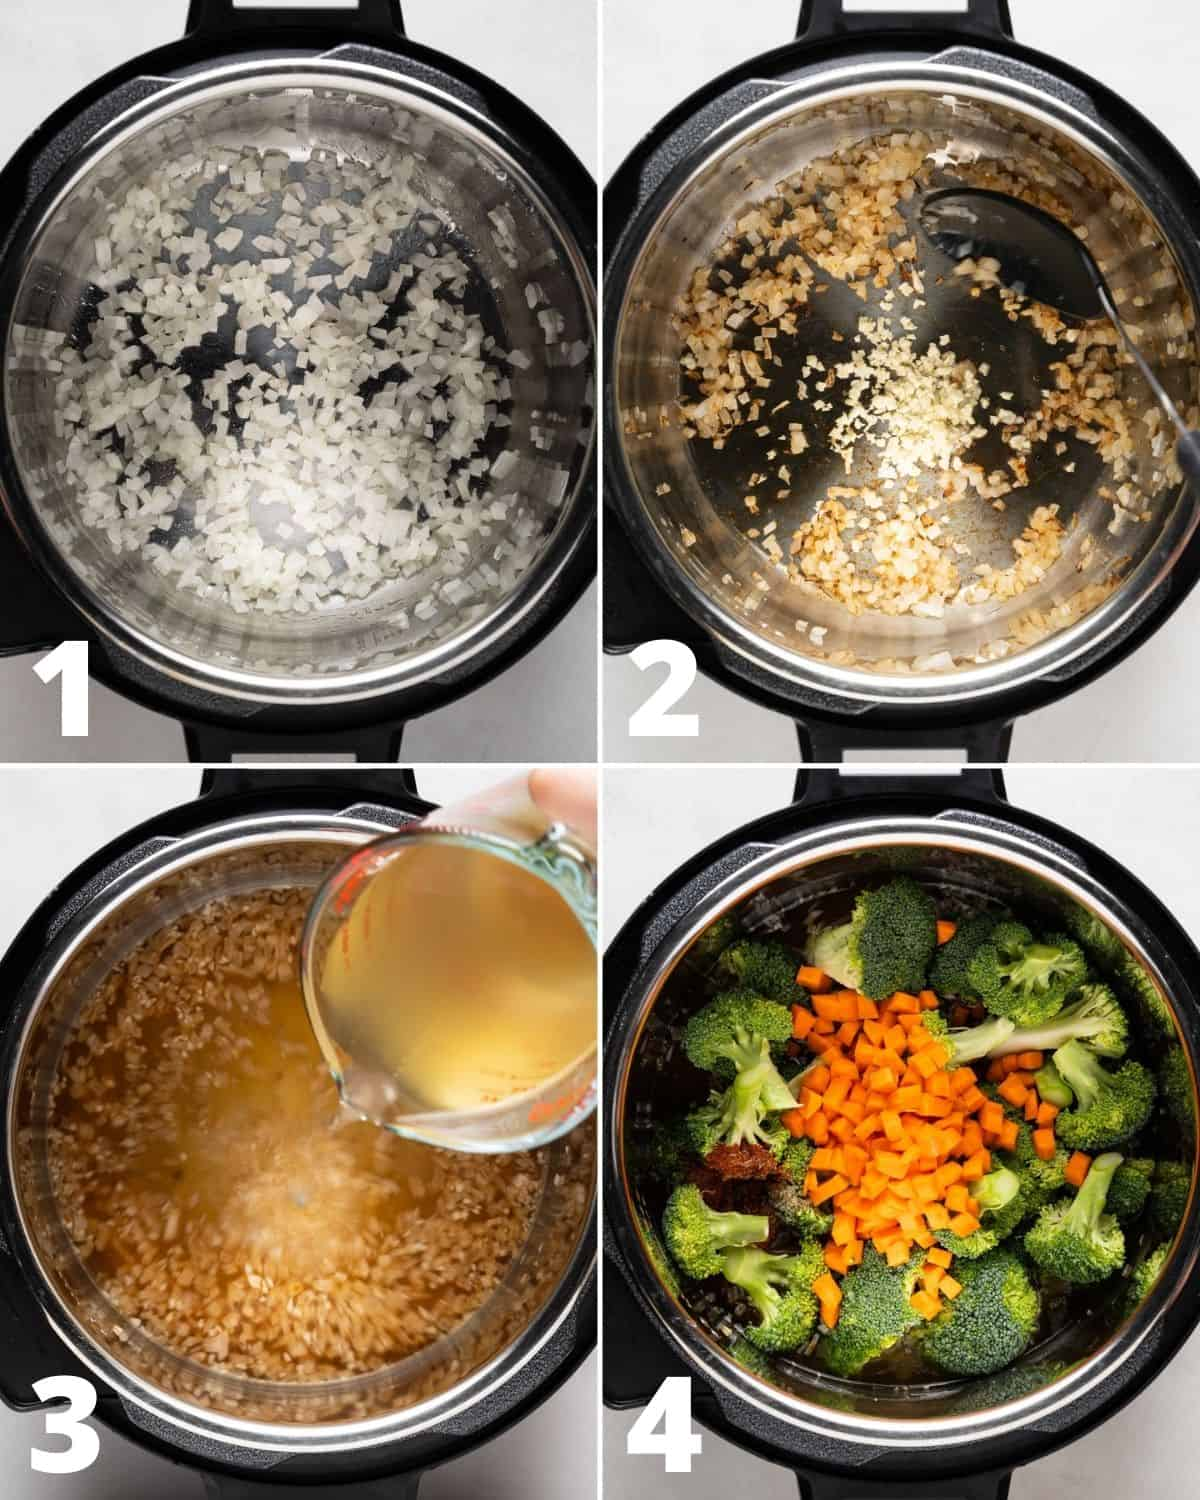 Steps to make Broccoli Cheddar Soup in the Instant Pot